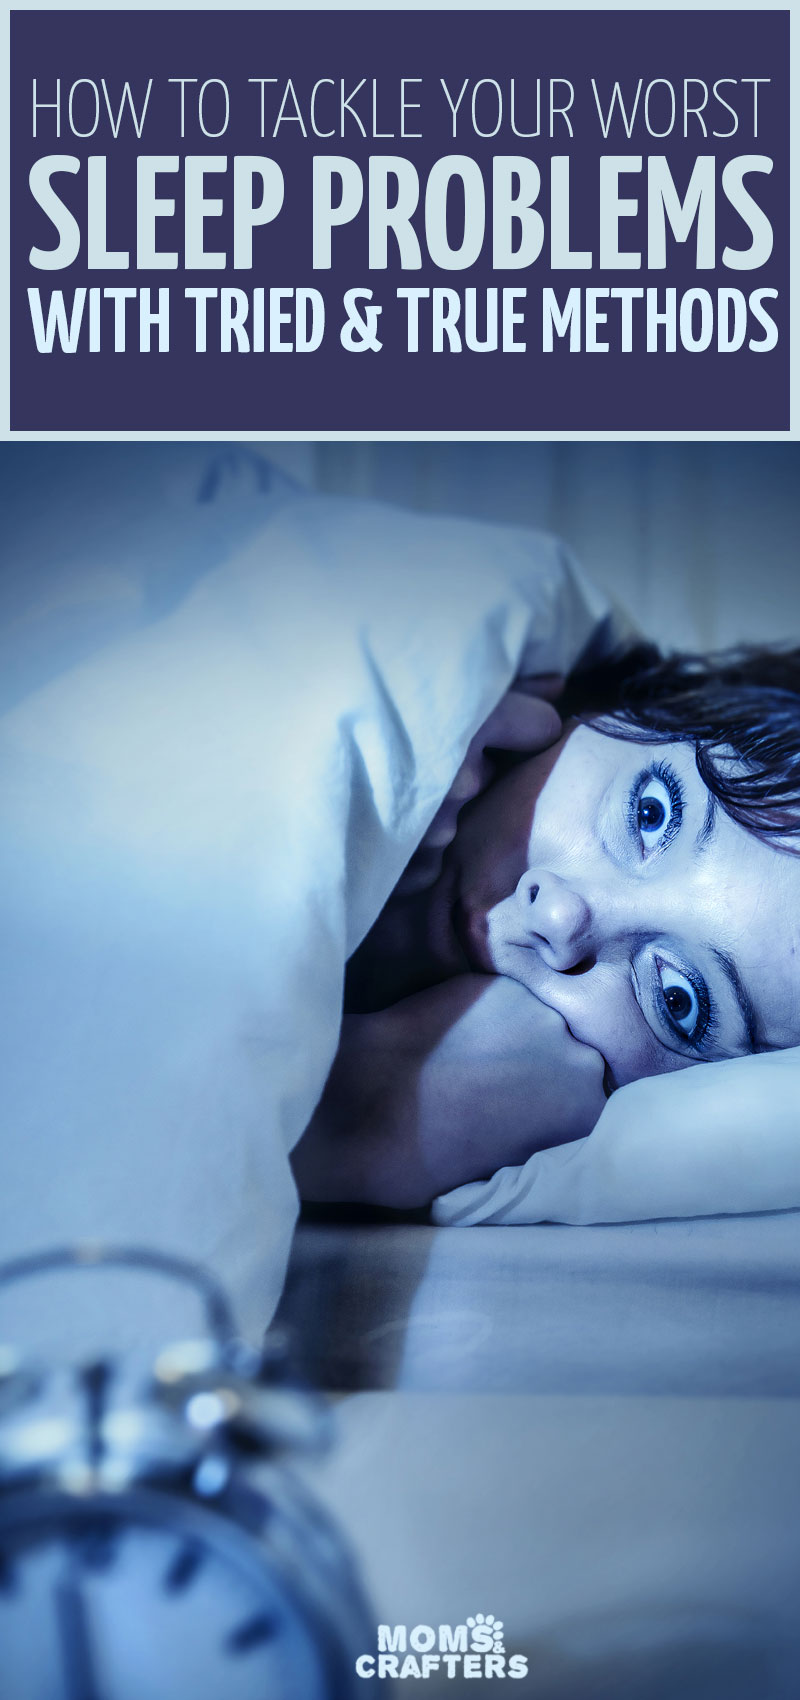 Click to read if you're struggling with mom insomnia! These tips to fall asleep at night can be life-changing! these insomnia tips include new ideas that you may not have tried before and work without medication